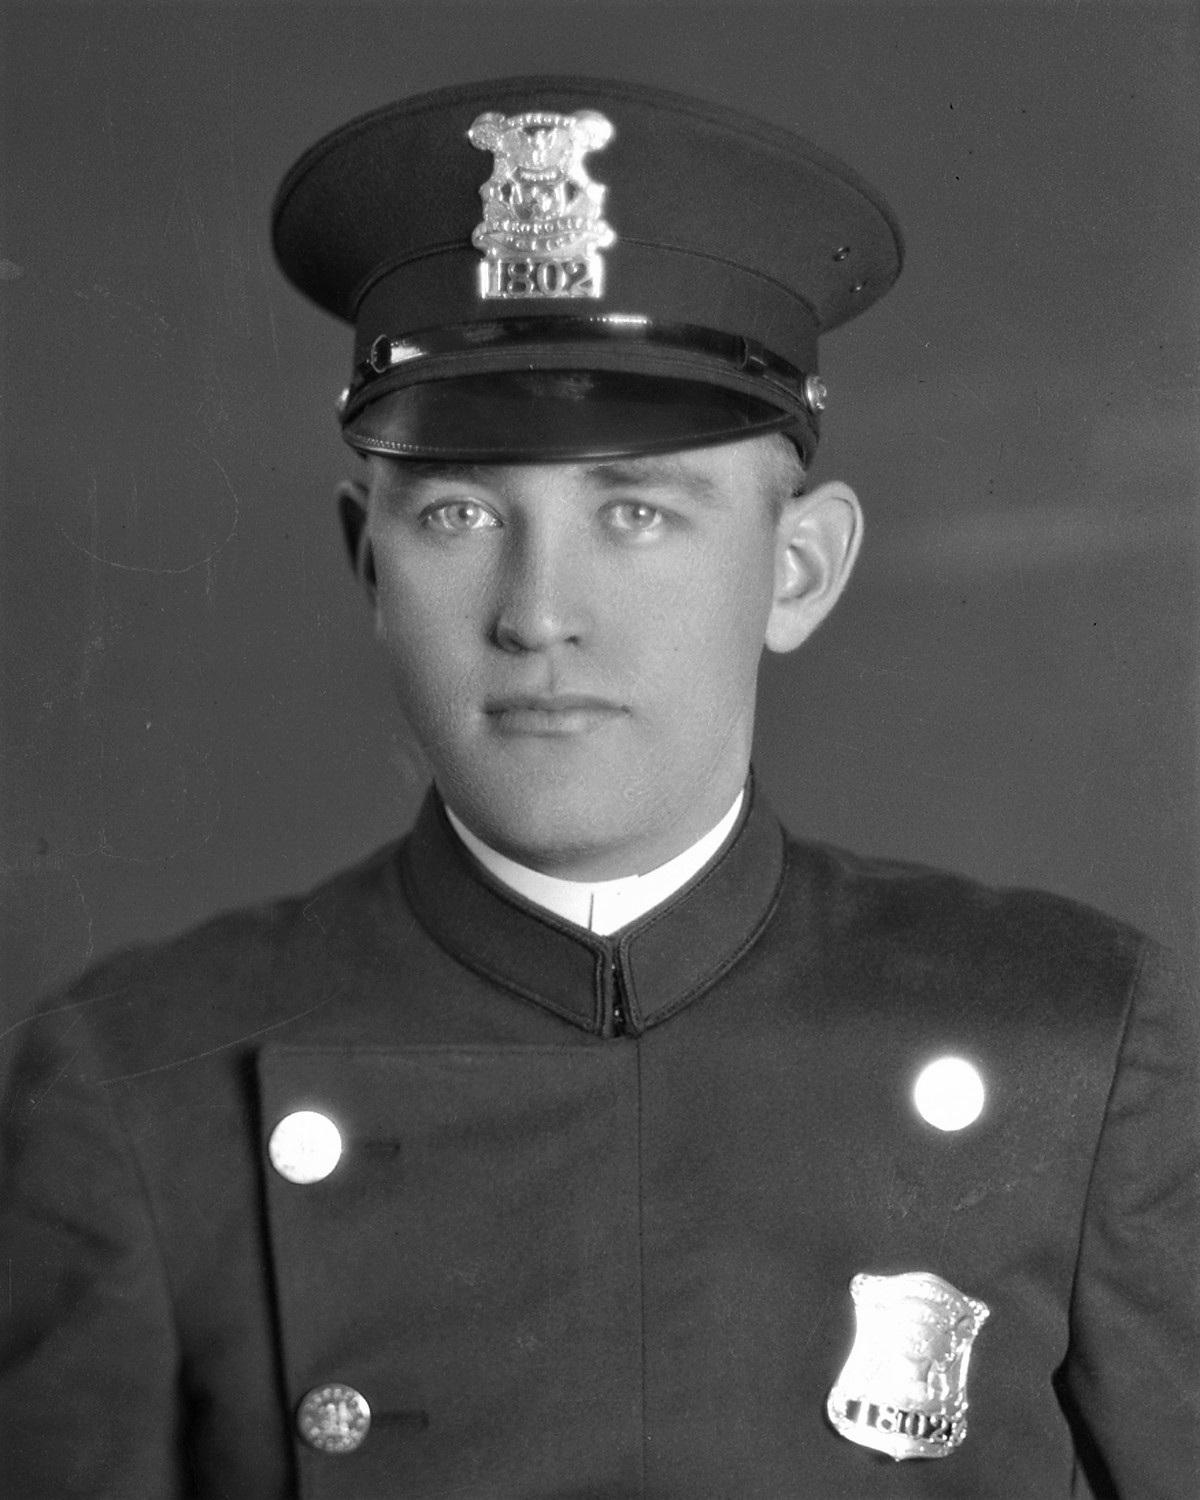 Sergeant George Barstad | Detroit Police Department, Michigan